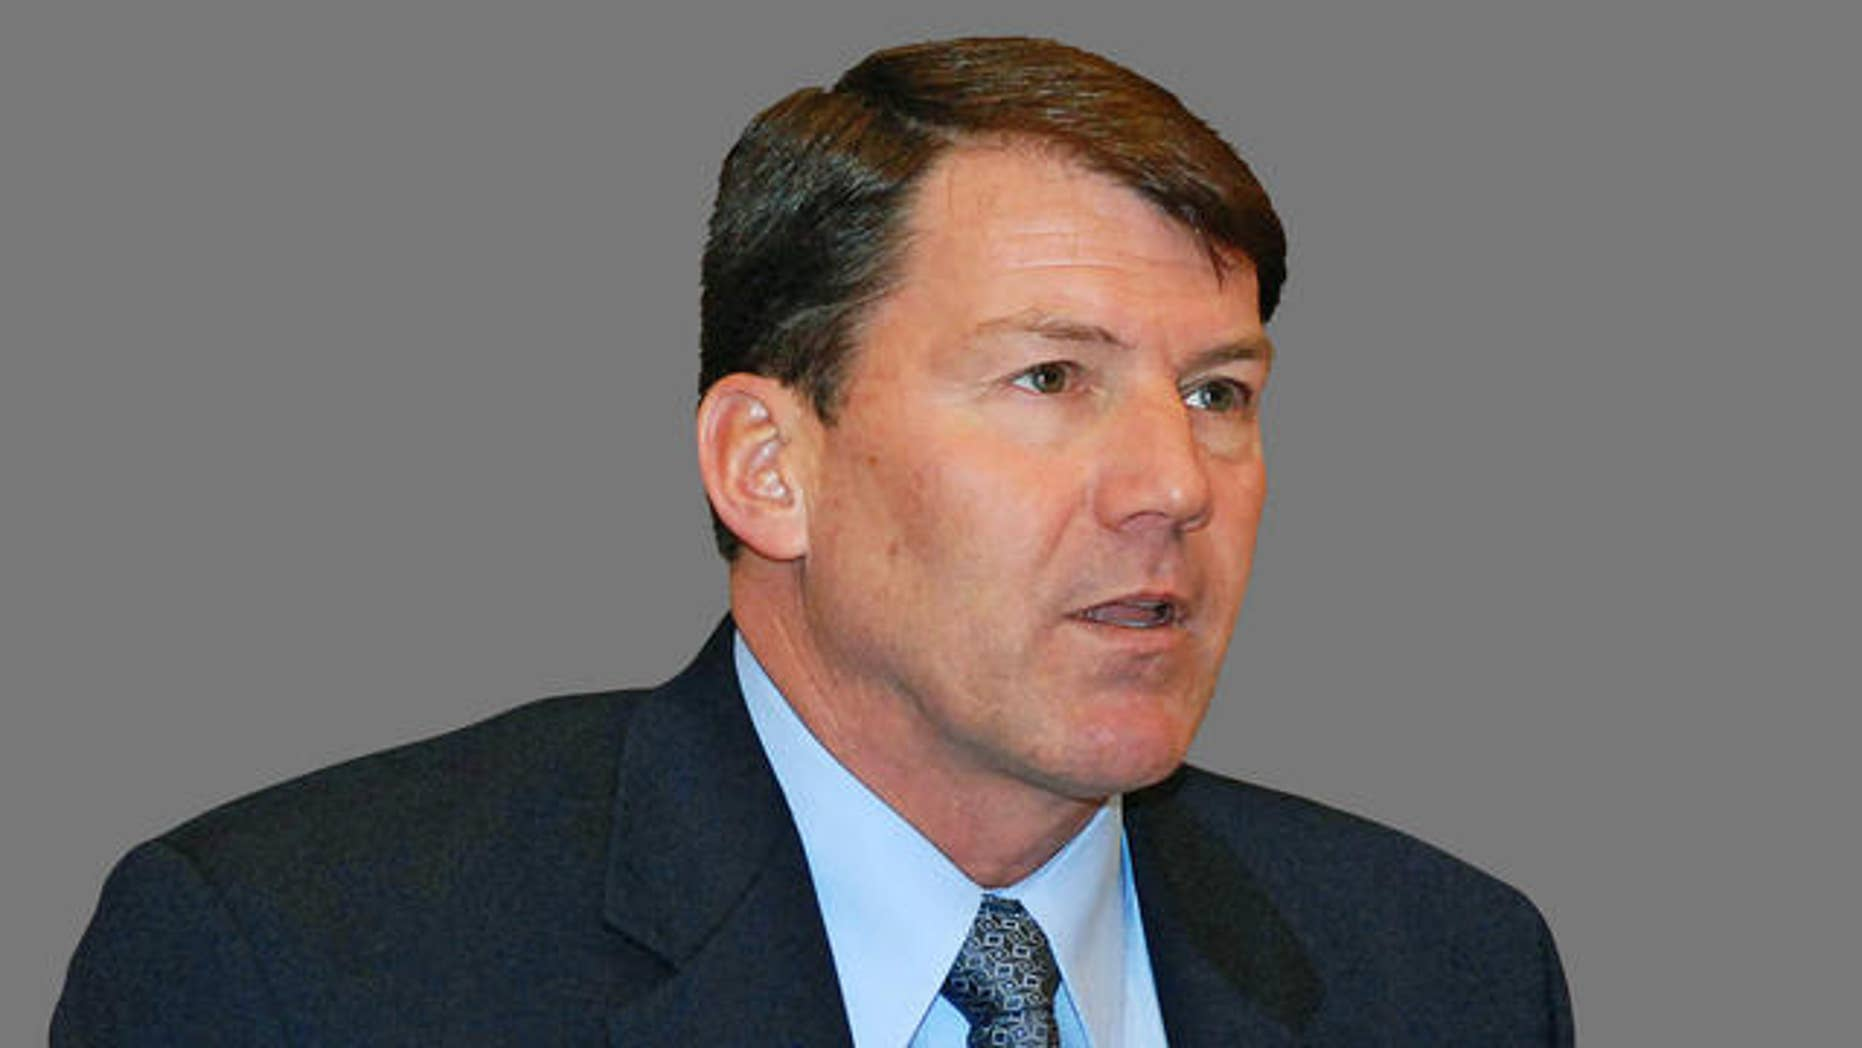 Former South Dakota Gov. Mike Rounds, pictured here in 2009, said he will run for the U.S. Senate in 2014.